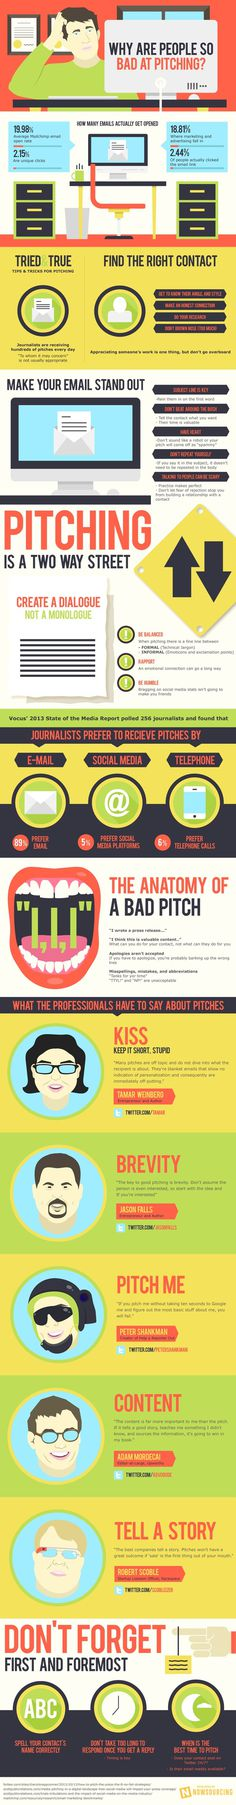 Why are people so bad at pitching to the media? Learn how to improve your pitching game from this infographic. #media #pitching #marketing #the